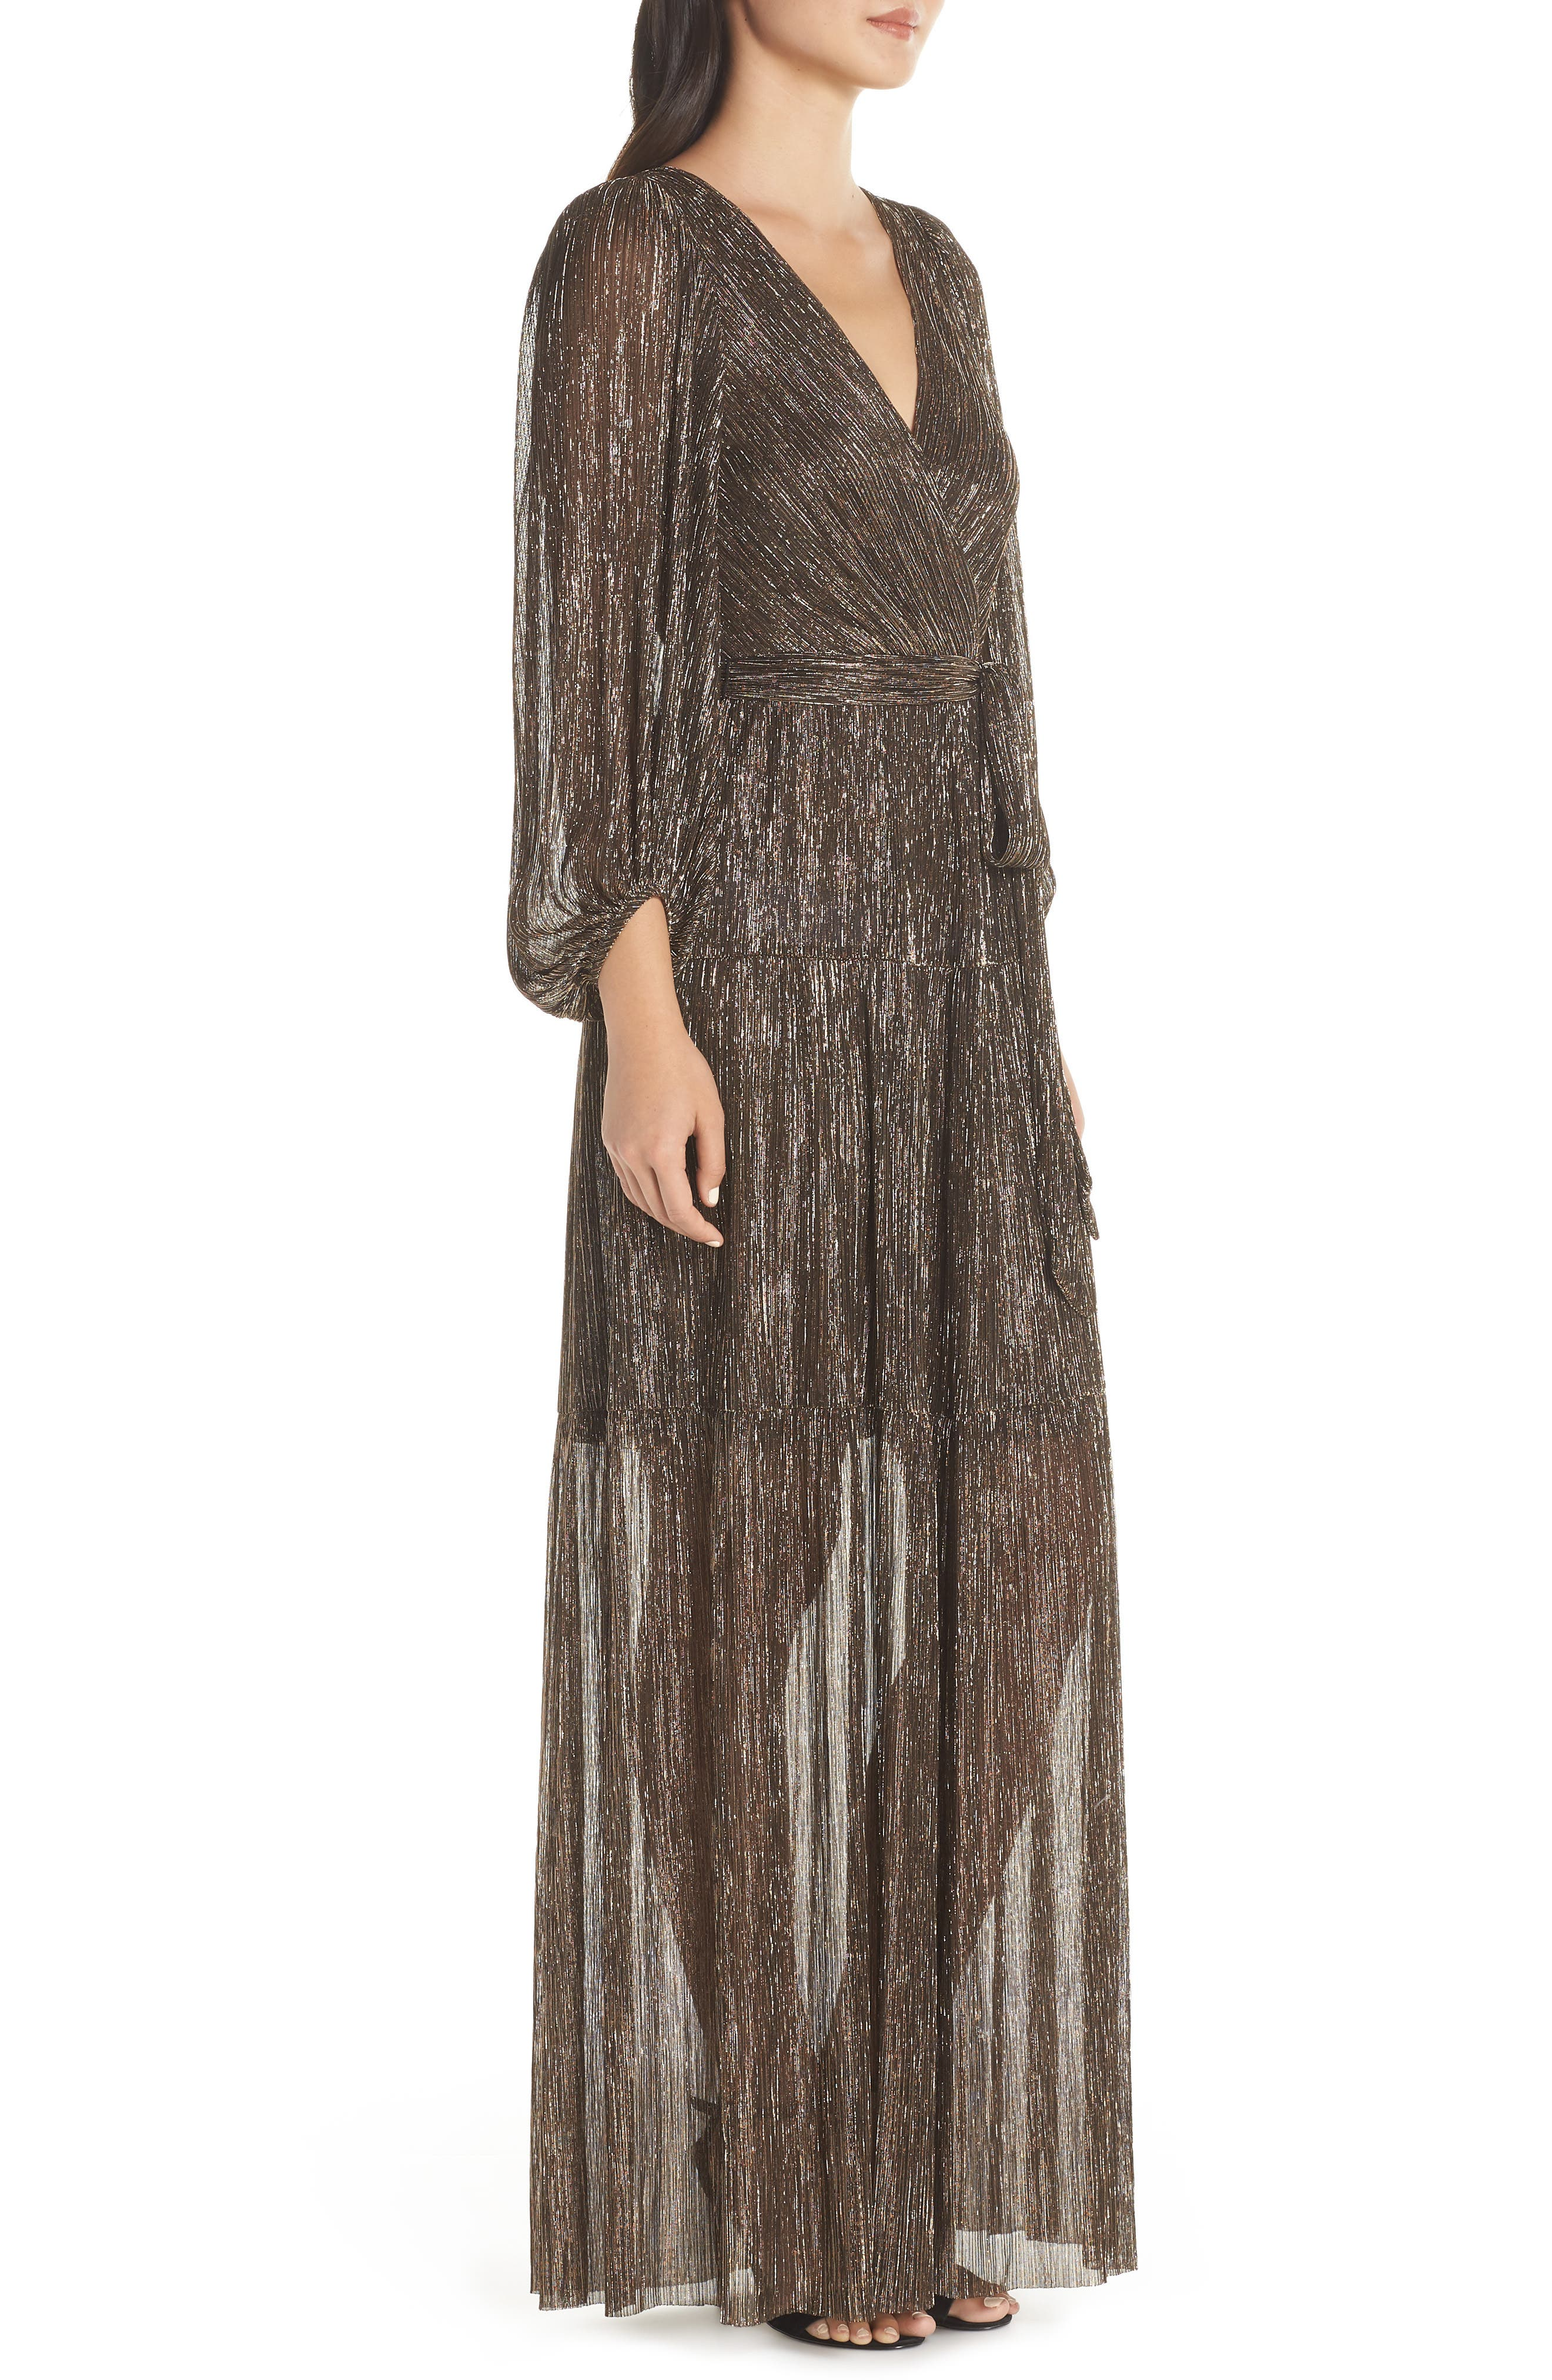 ELIZA J,                             Backless Metallic Maxi Wrap Dress,                             Alternate thumbnail 4, color,                             GOLD